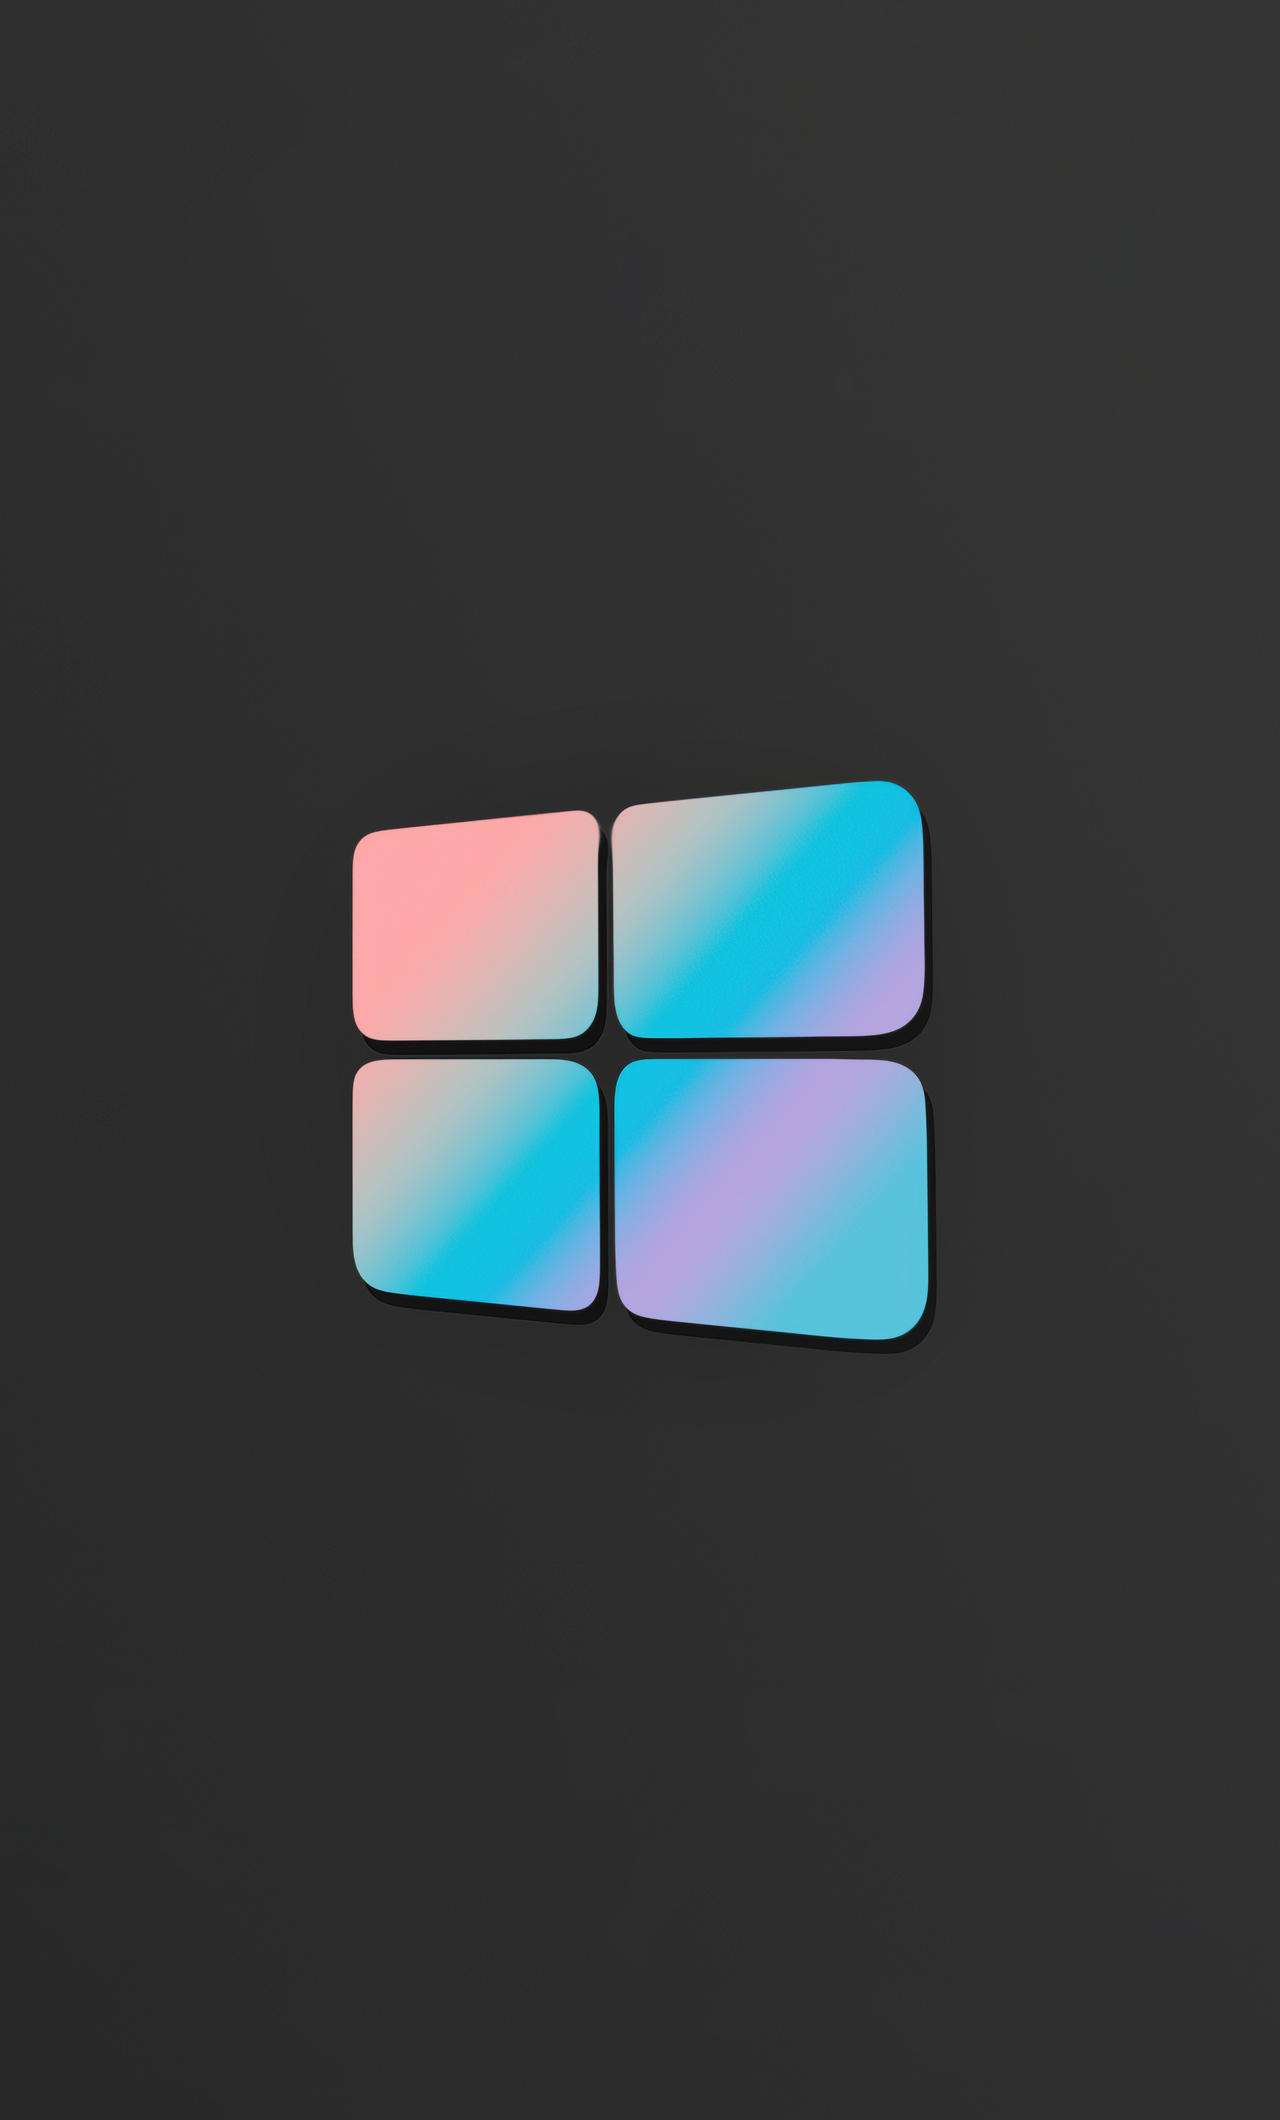 windows-10-logo-gray-4k-gy.jpg